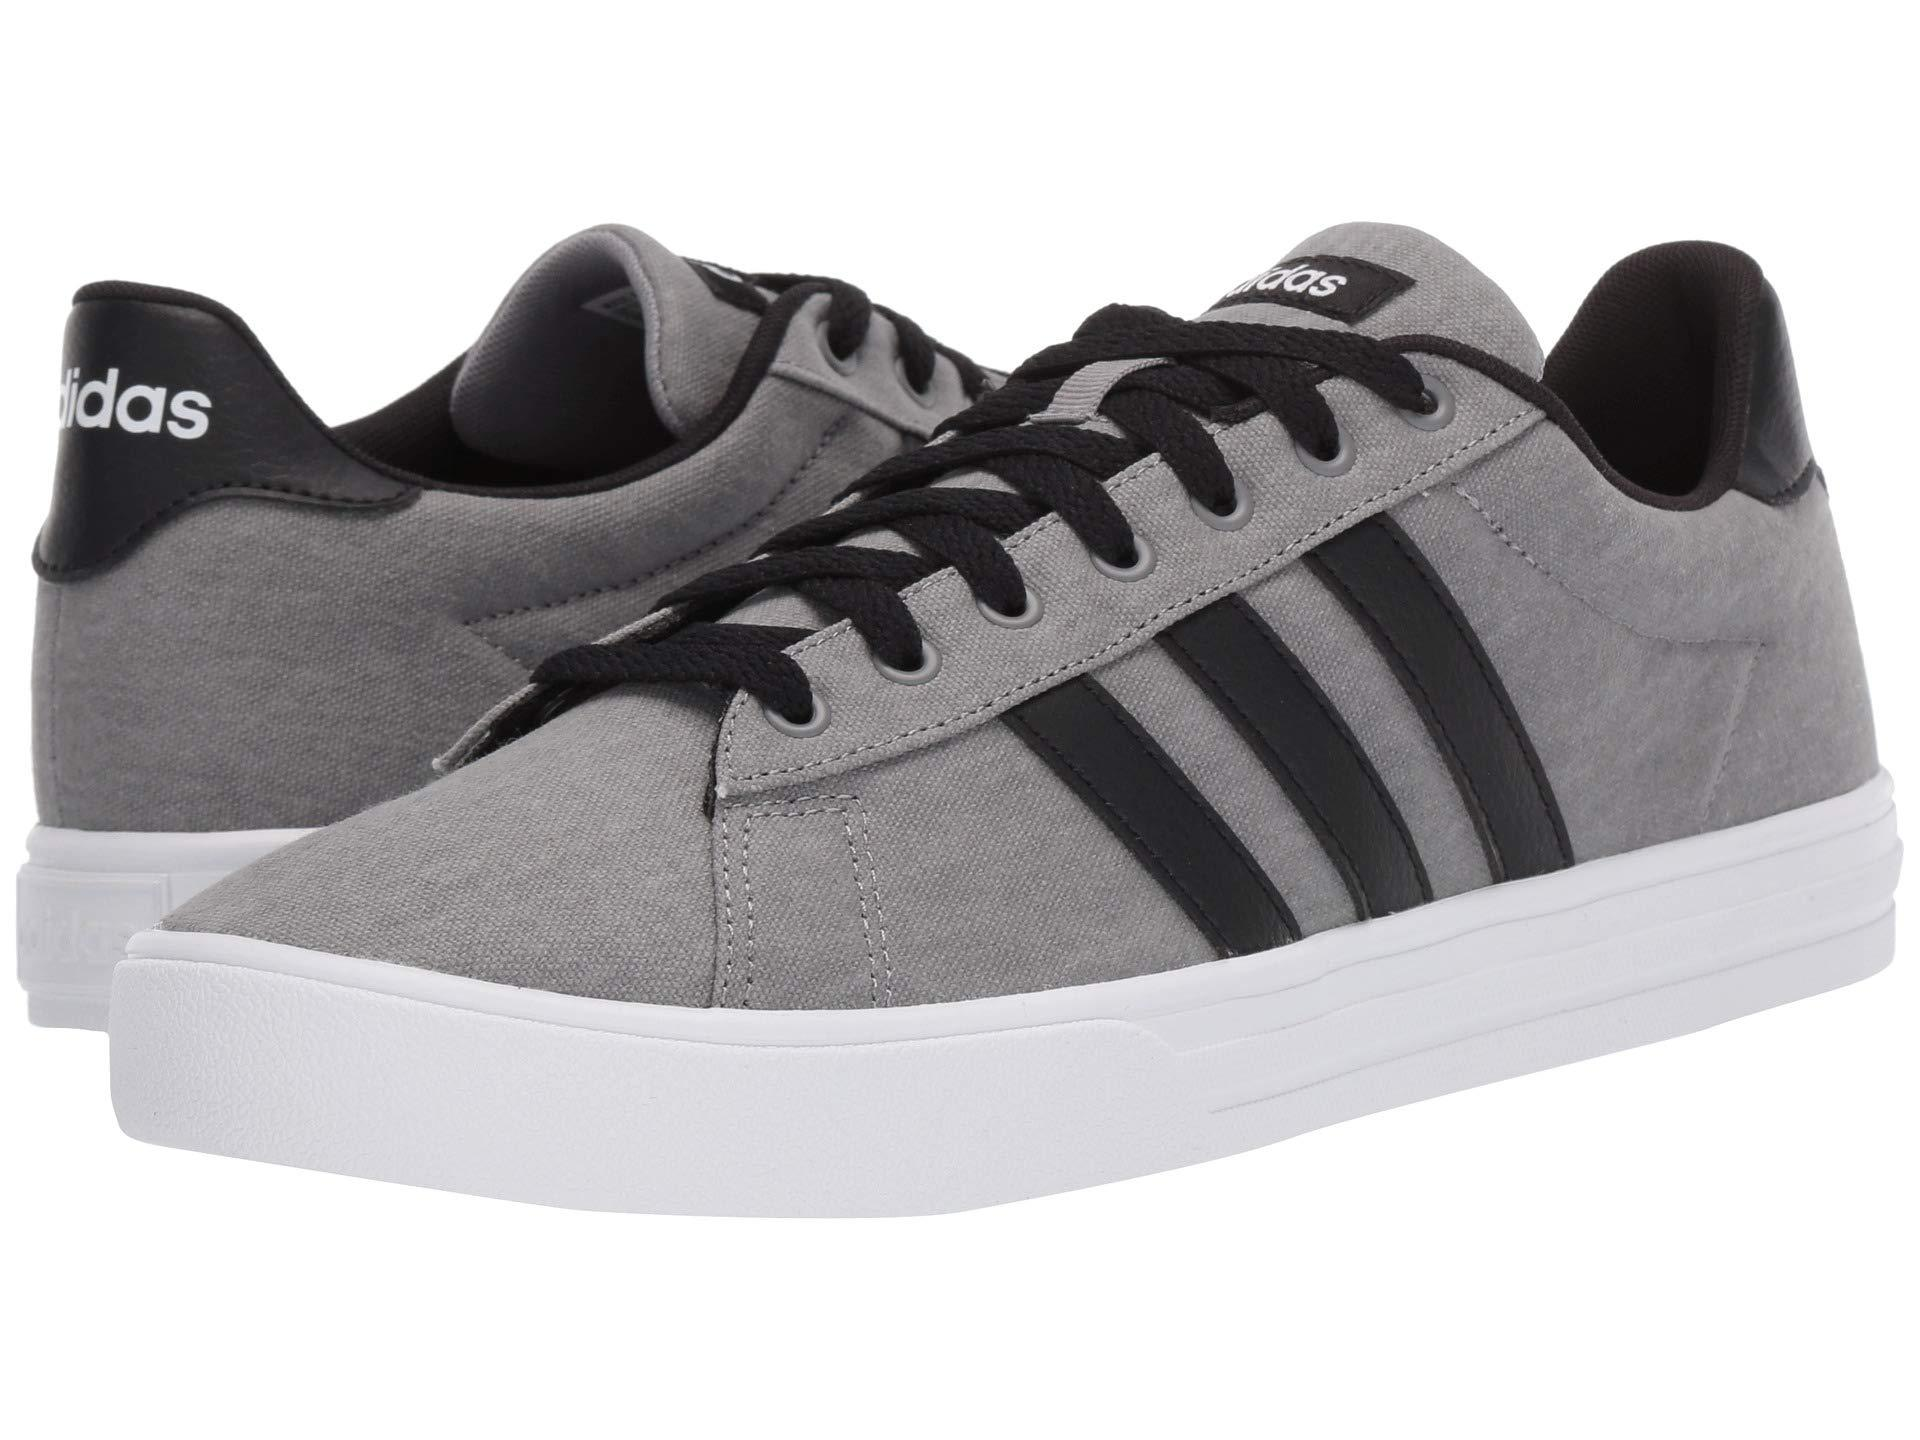 3ba902a9224 Lyst - adidas Daily 2.0 for Men